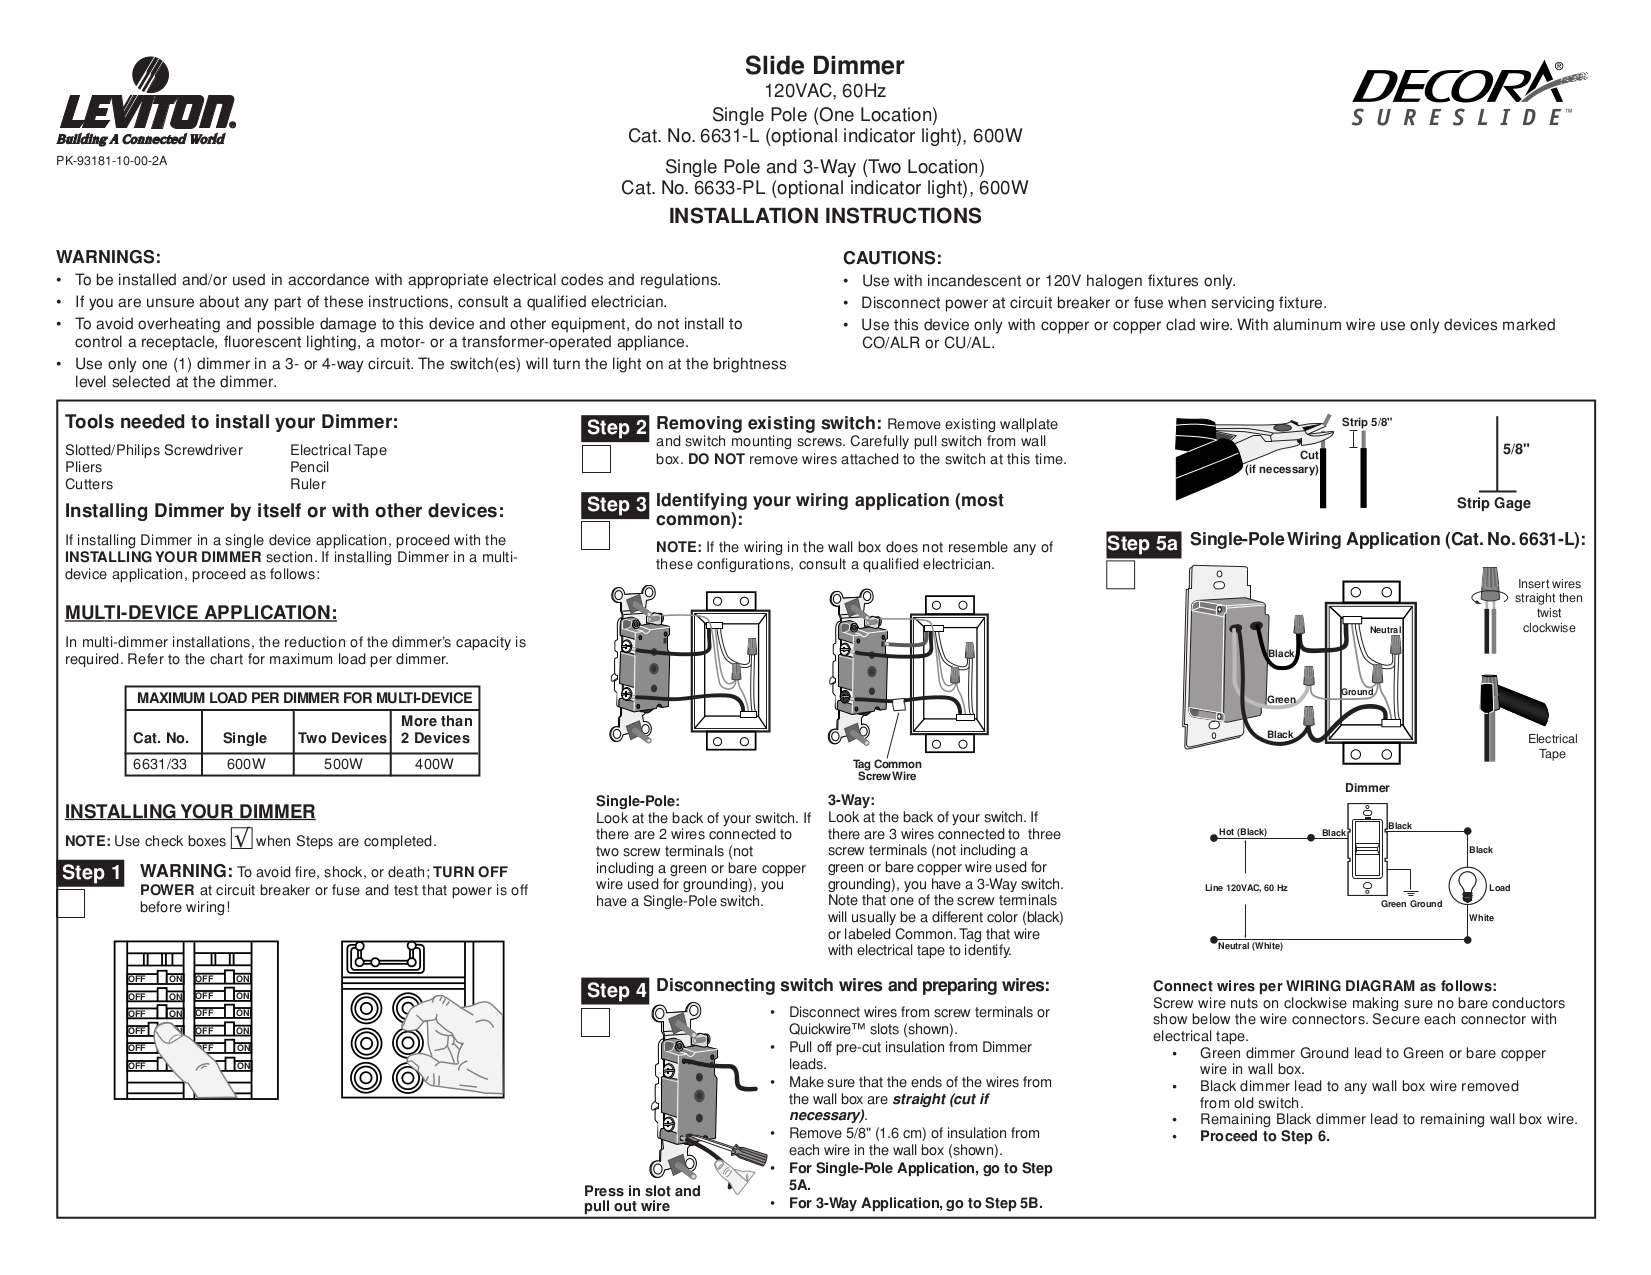 ... pdf 0 download free pdf for leviton sureslide 6631 l dimmers other  manual Light Dimmer Switch